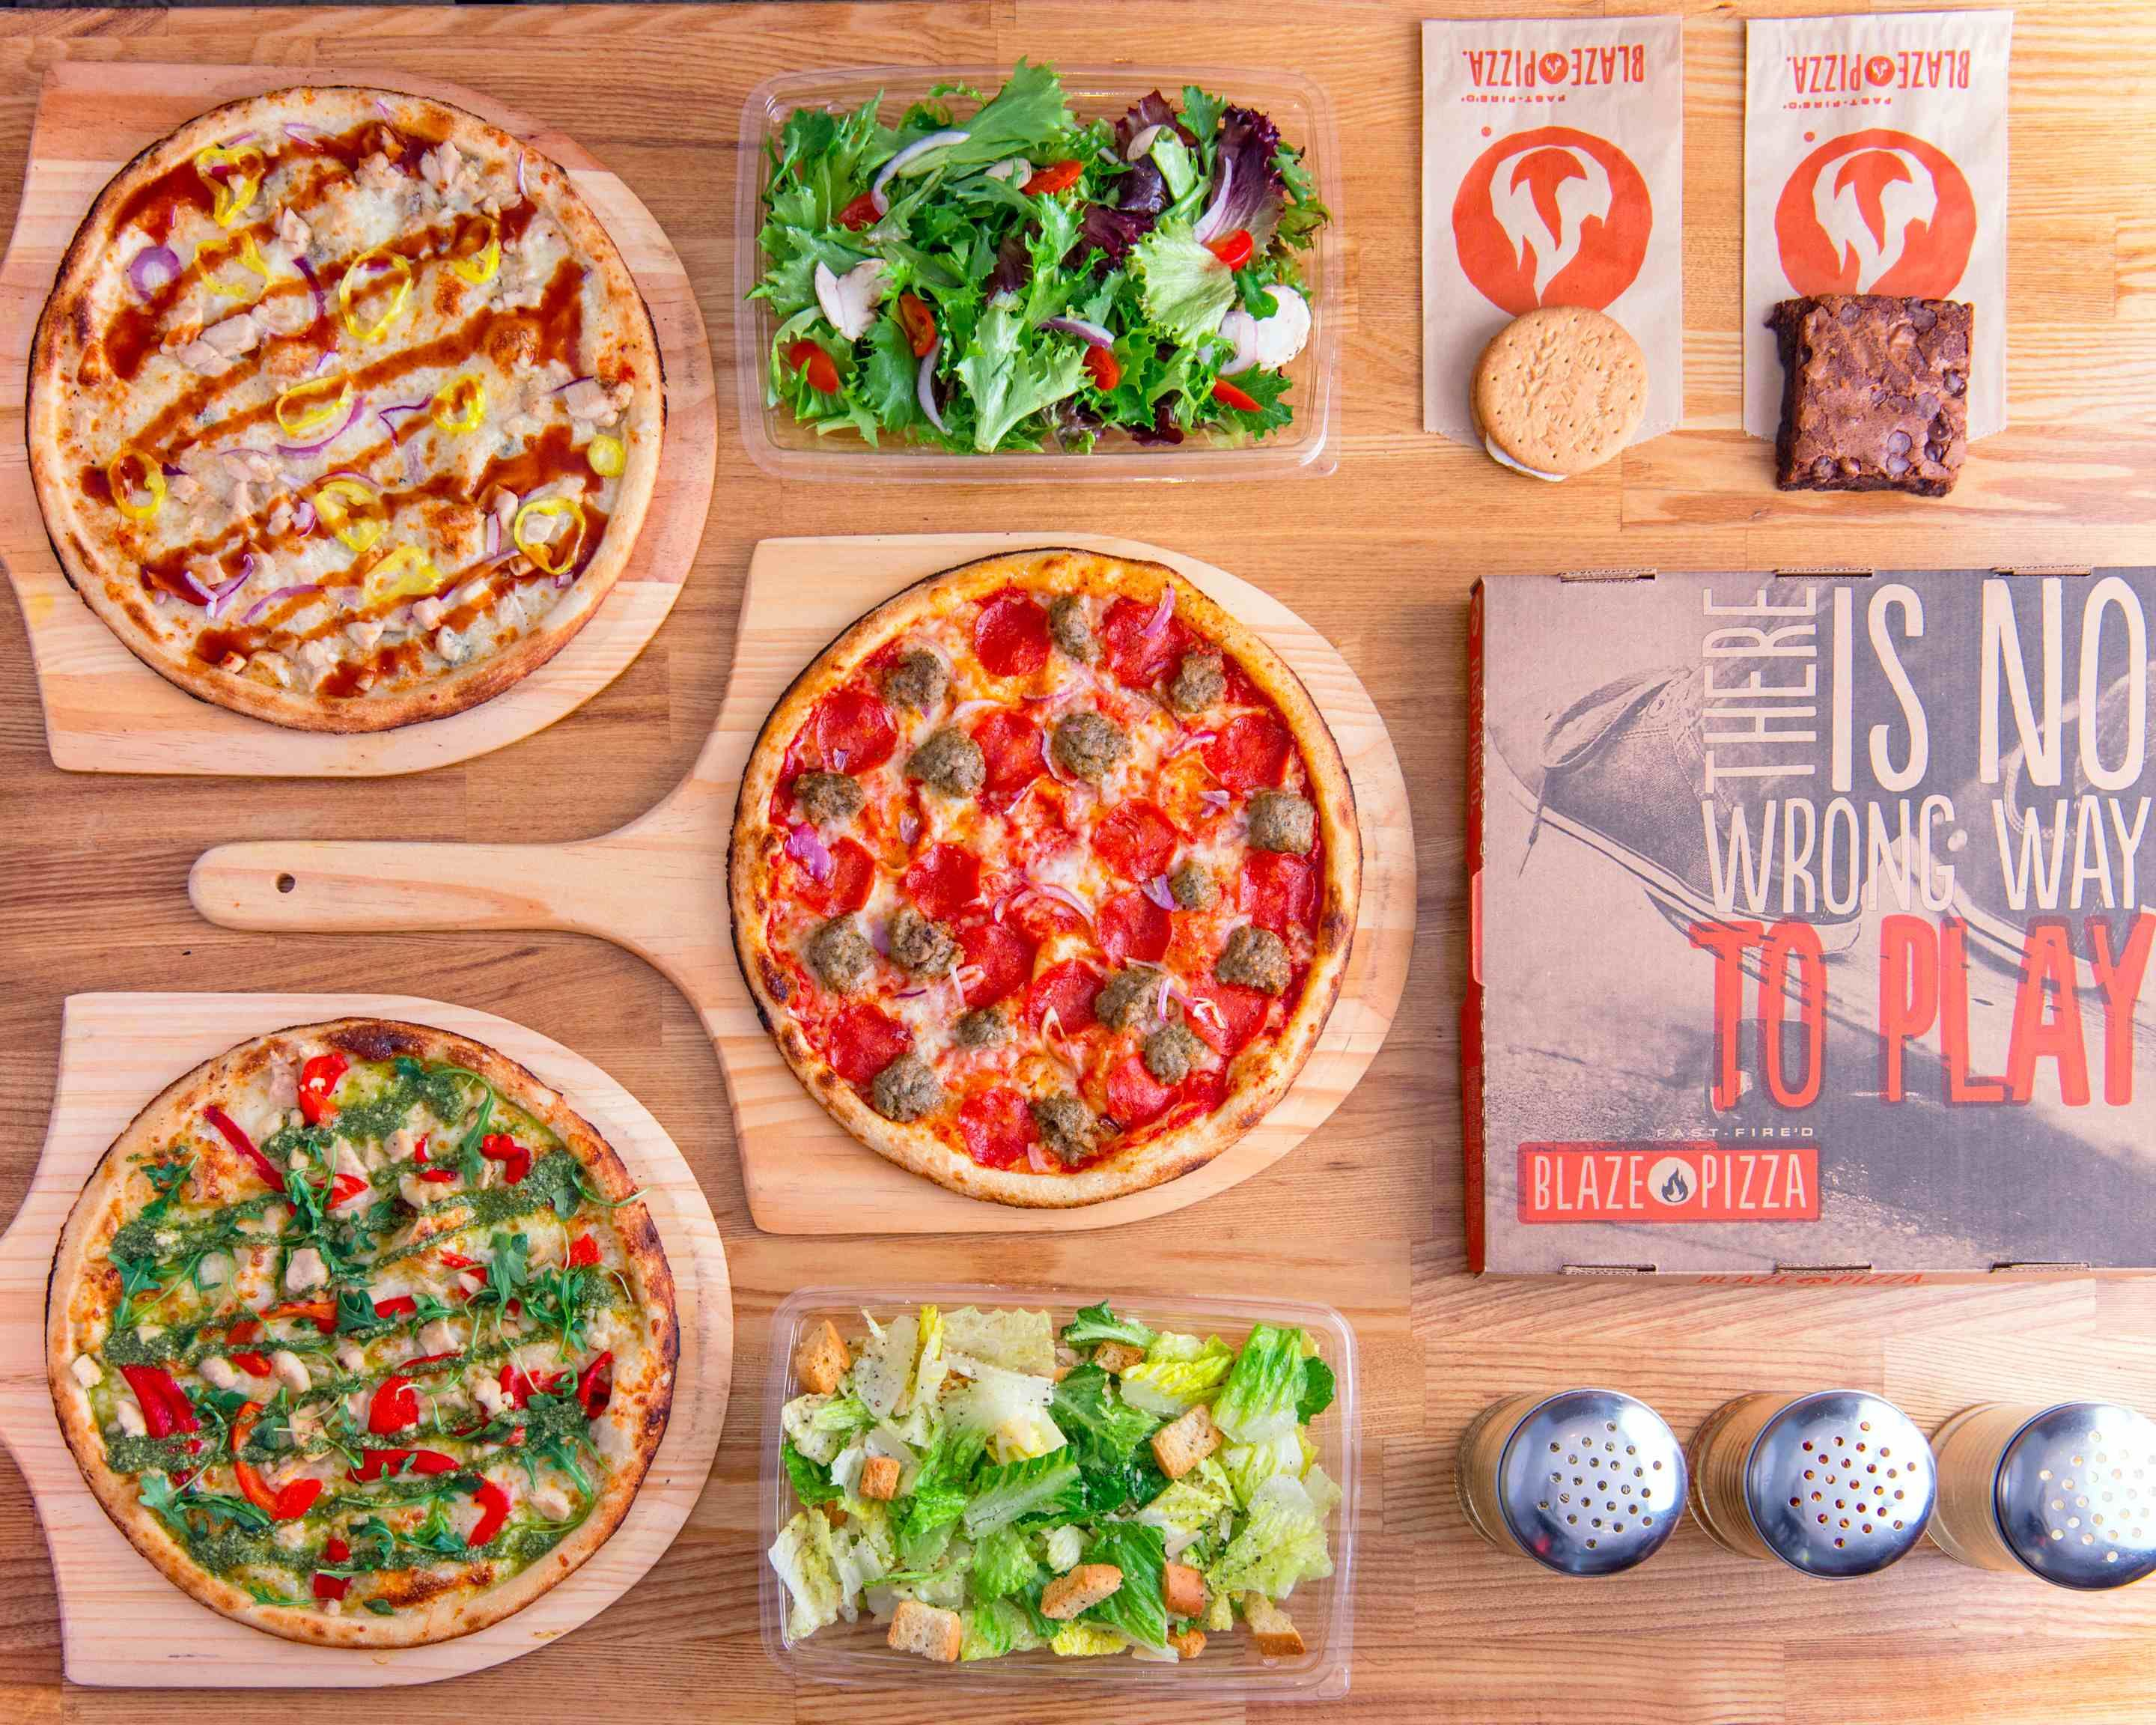 Blaze Pizza (2692 N. Greenwich Court)